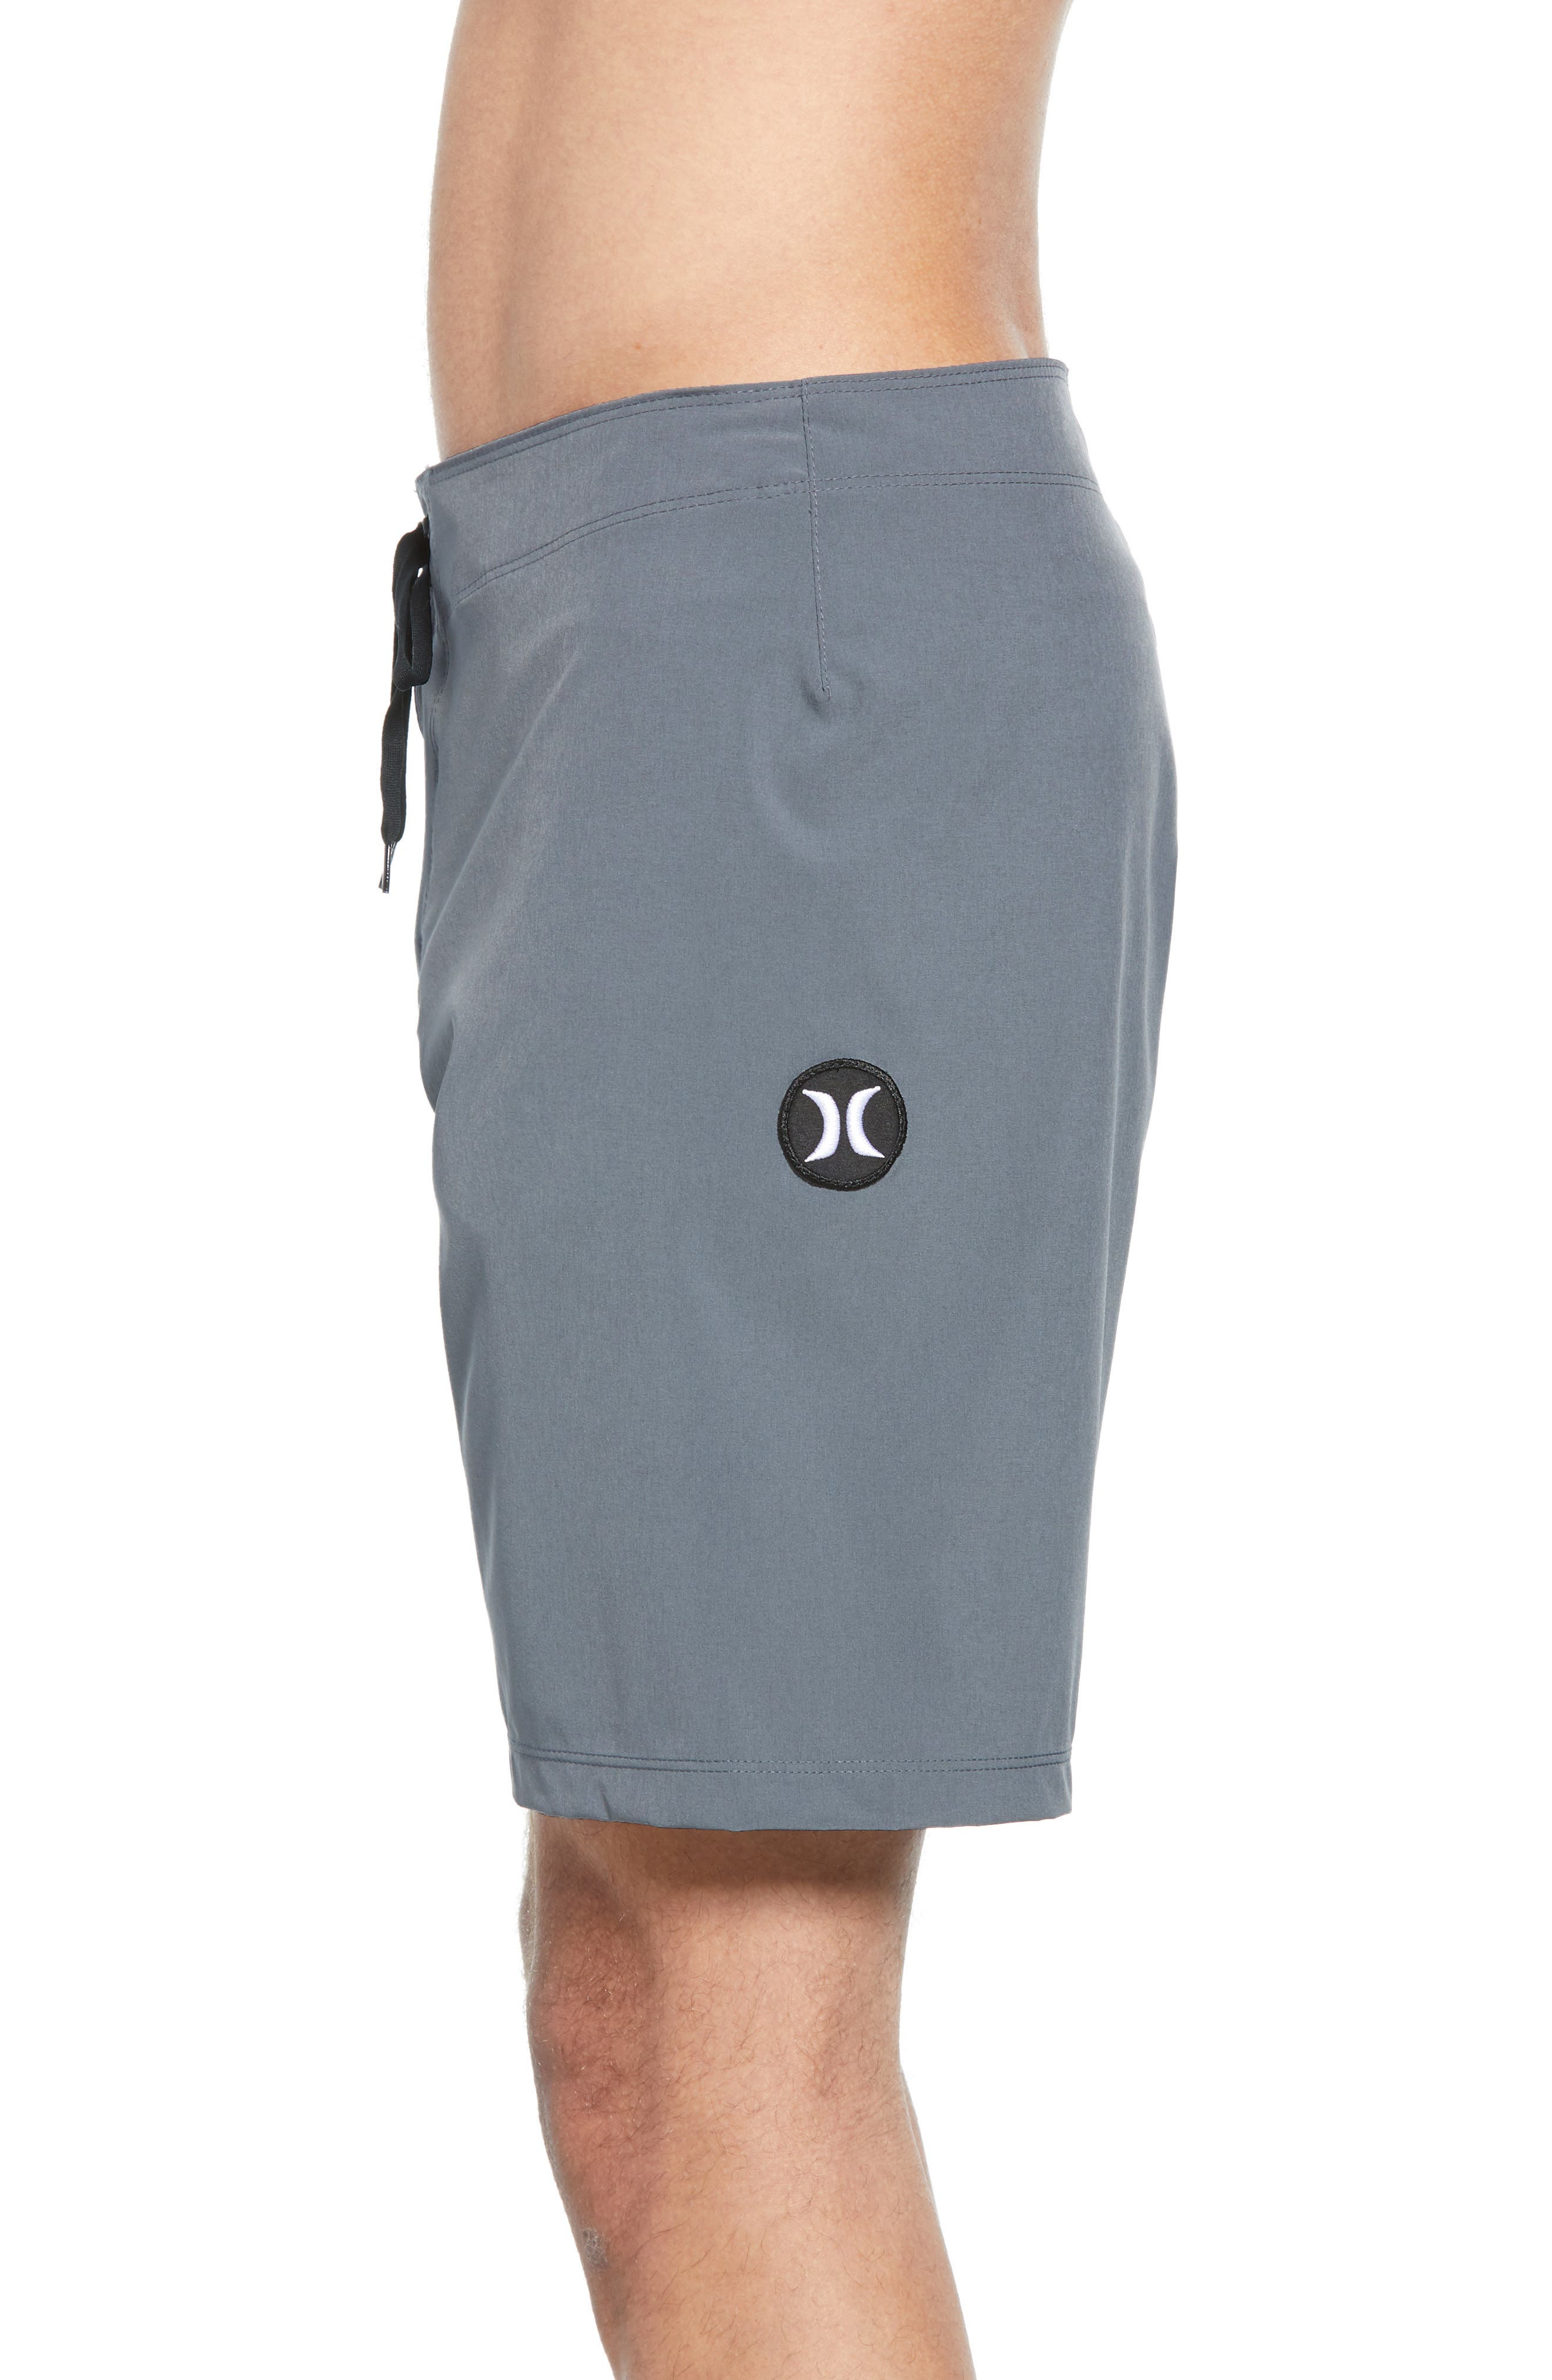 HURLEY, Phantom One & Only Board Shorts, Alternate thumbnail 4, color, COOL GREY